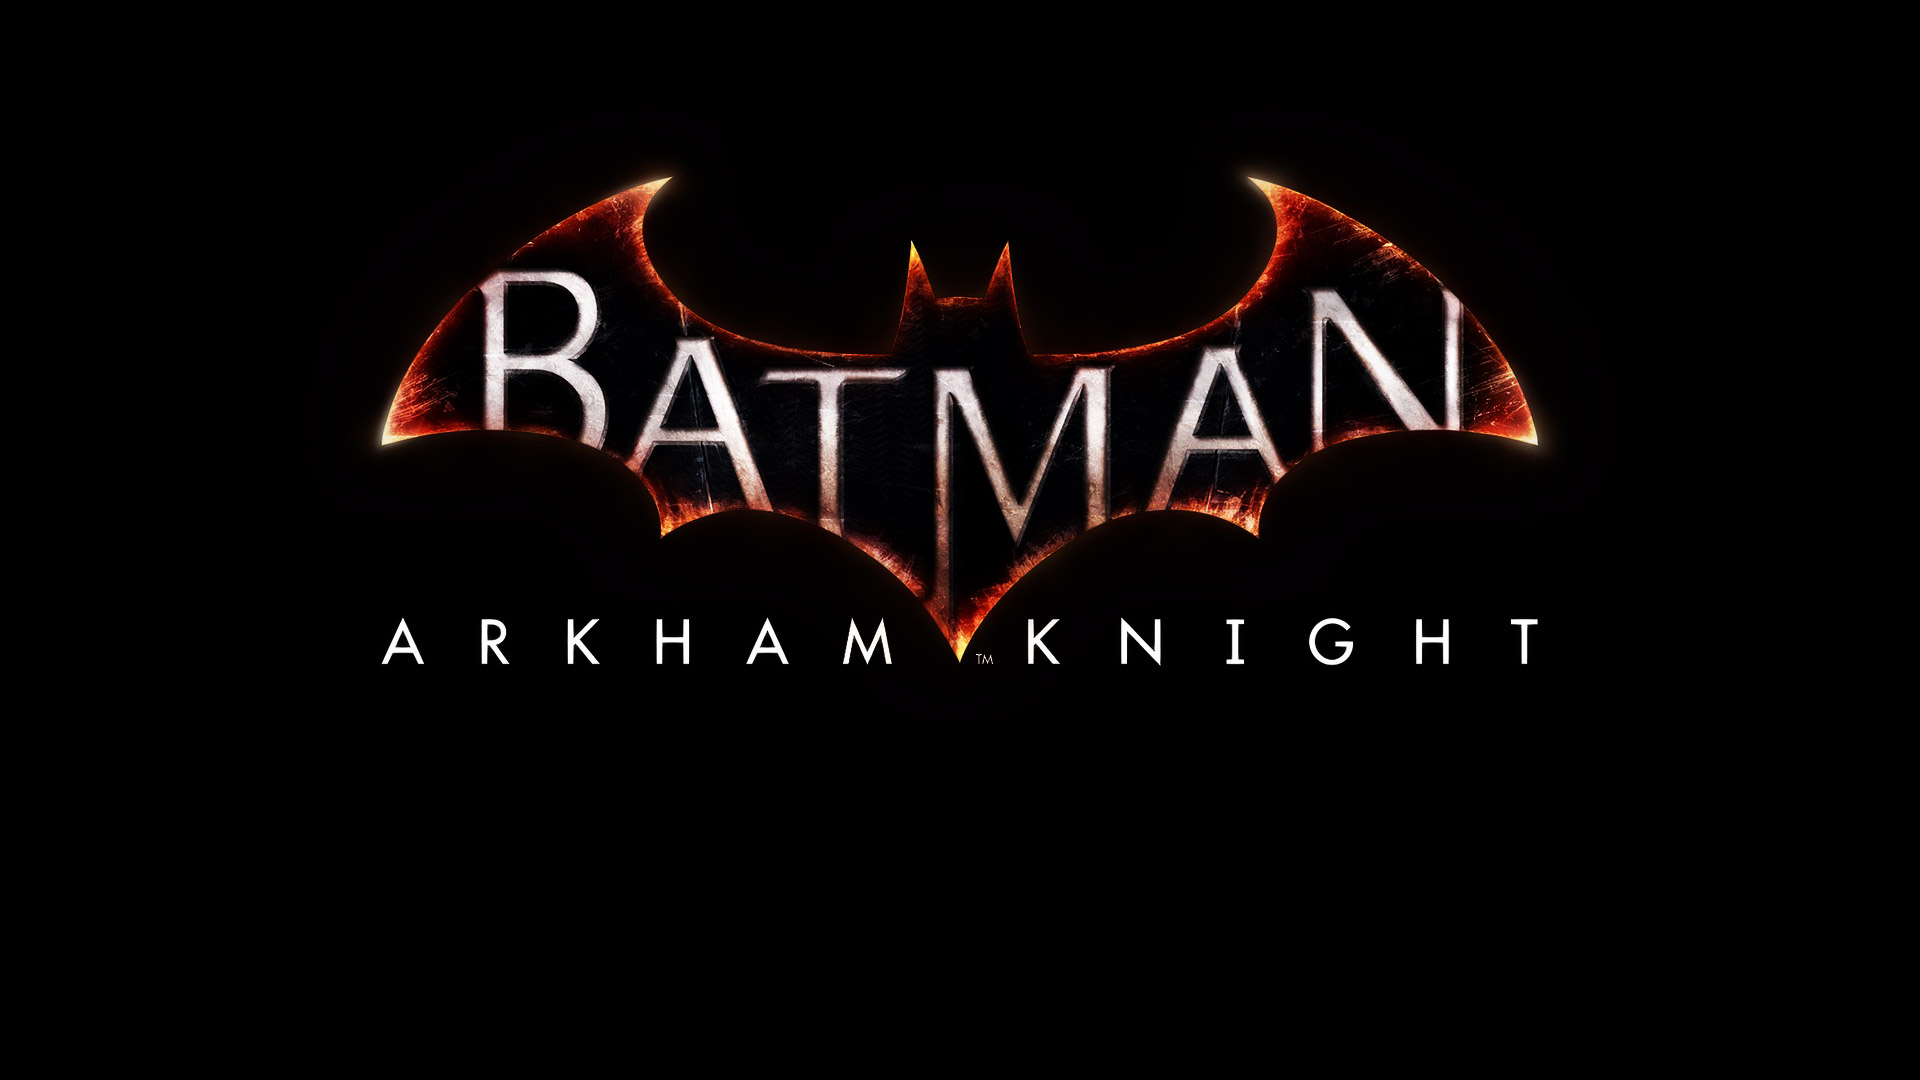 Batman Arkham Knight wallpaper 3